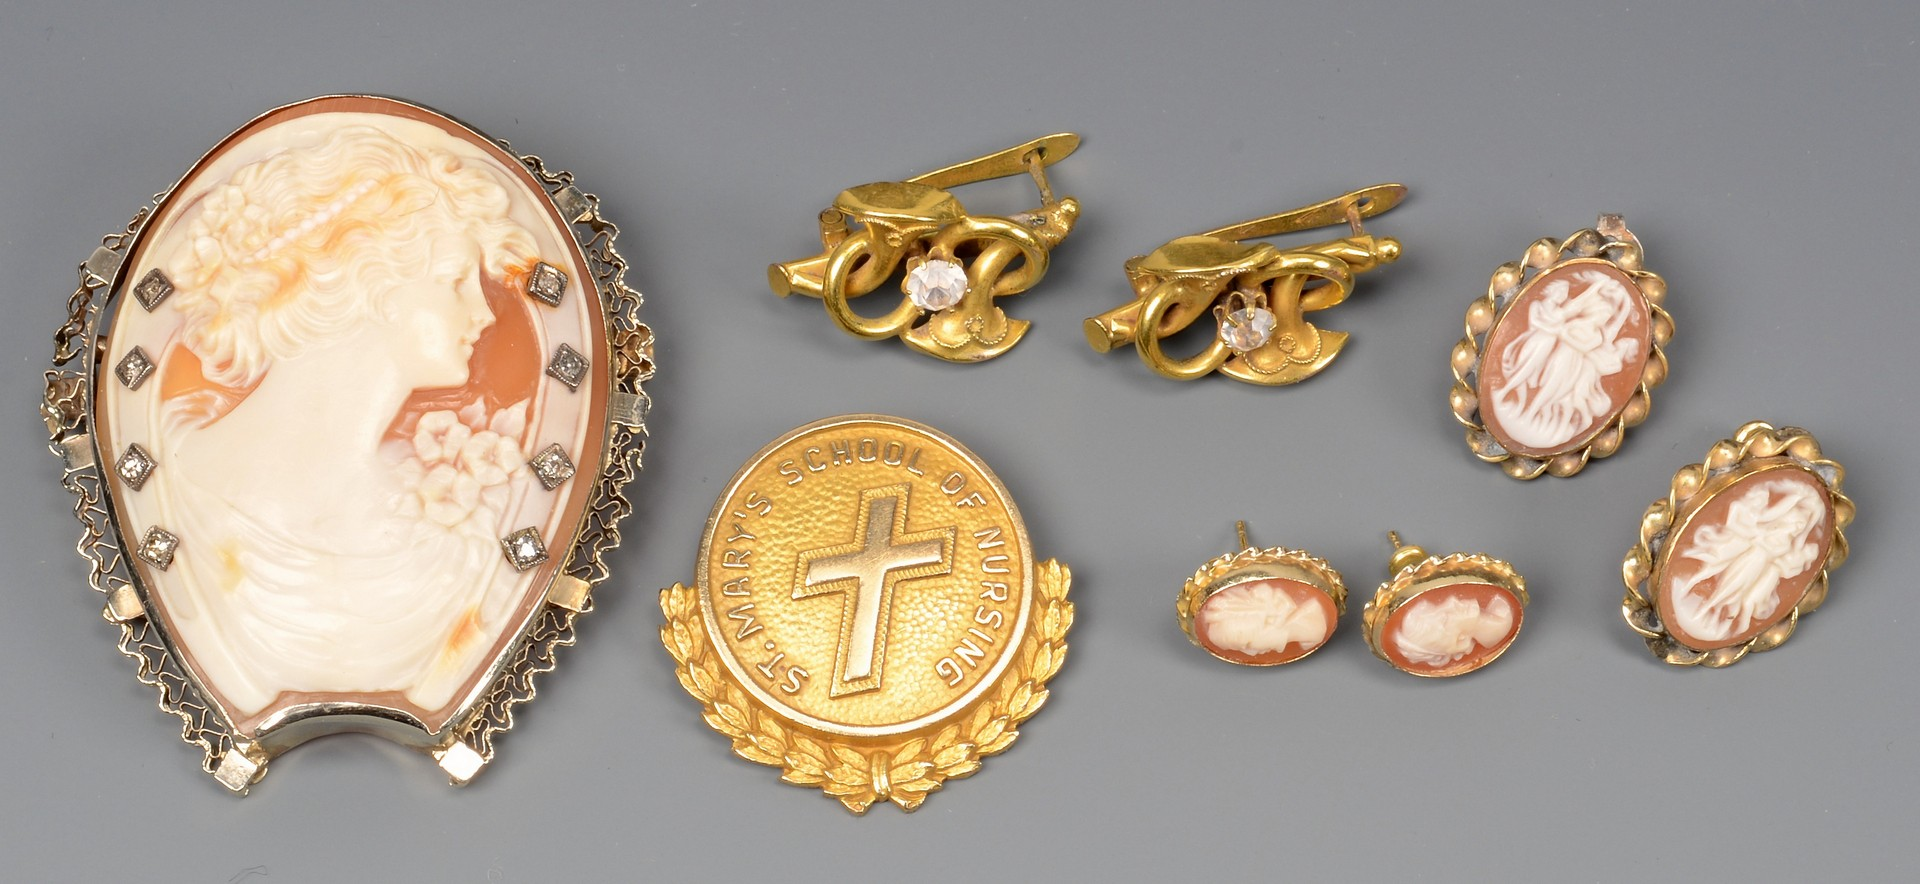 Lot 665: Grouping of Cameo Jewelry plus other